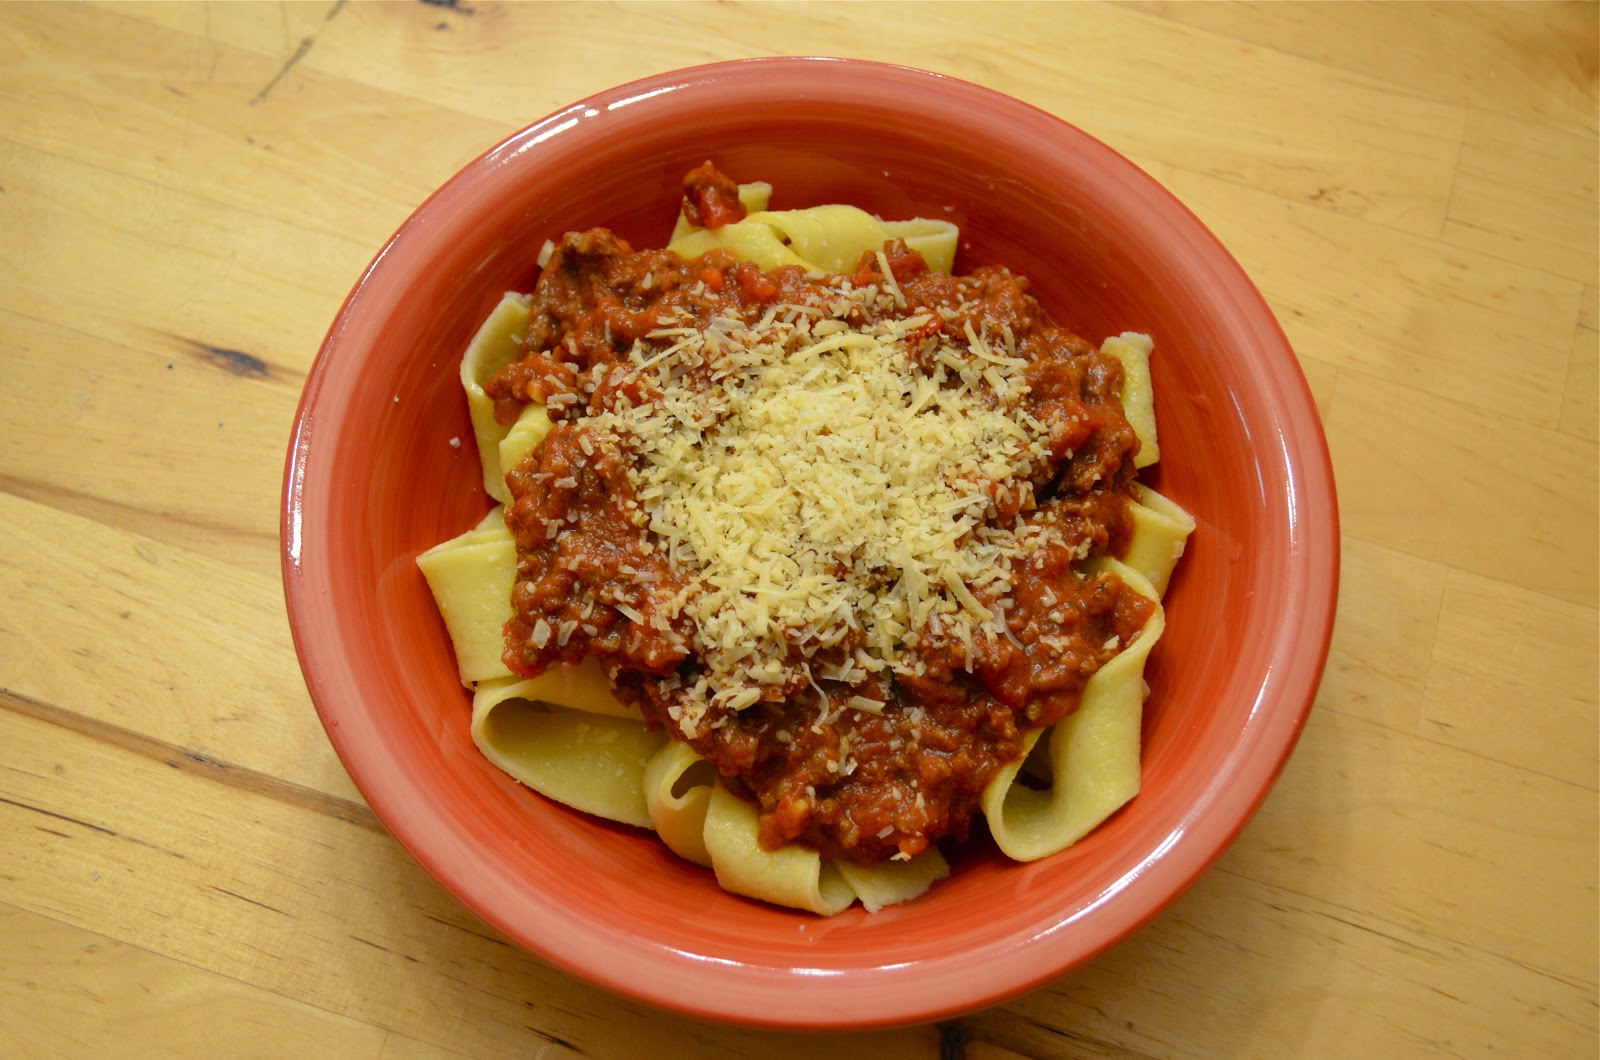 Just Shmying Around: Homemade Pappardelle with Bolognese Sauce